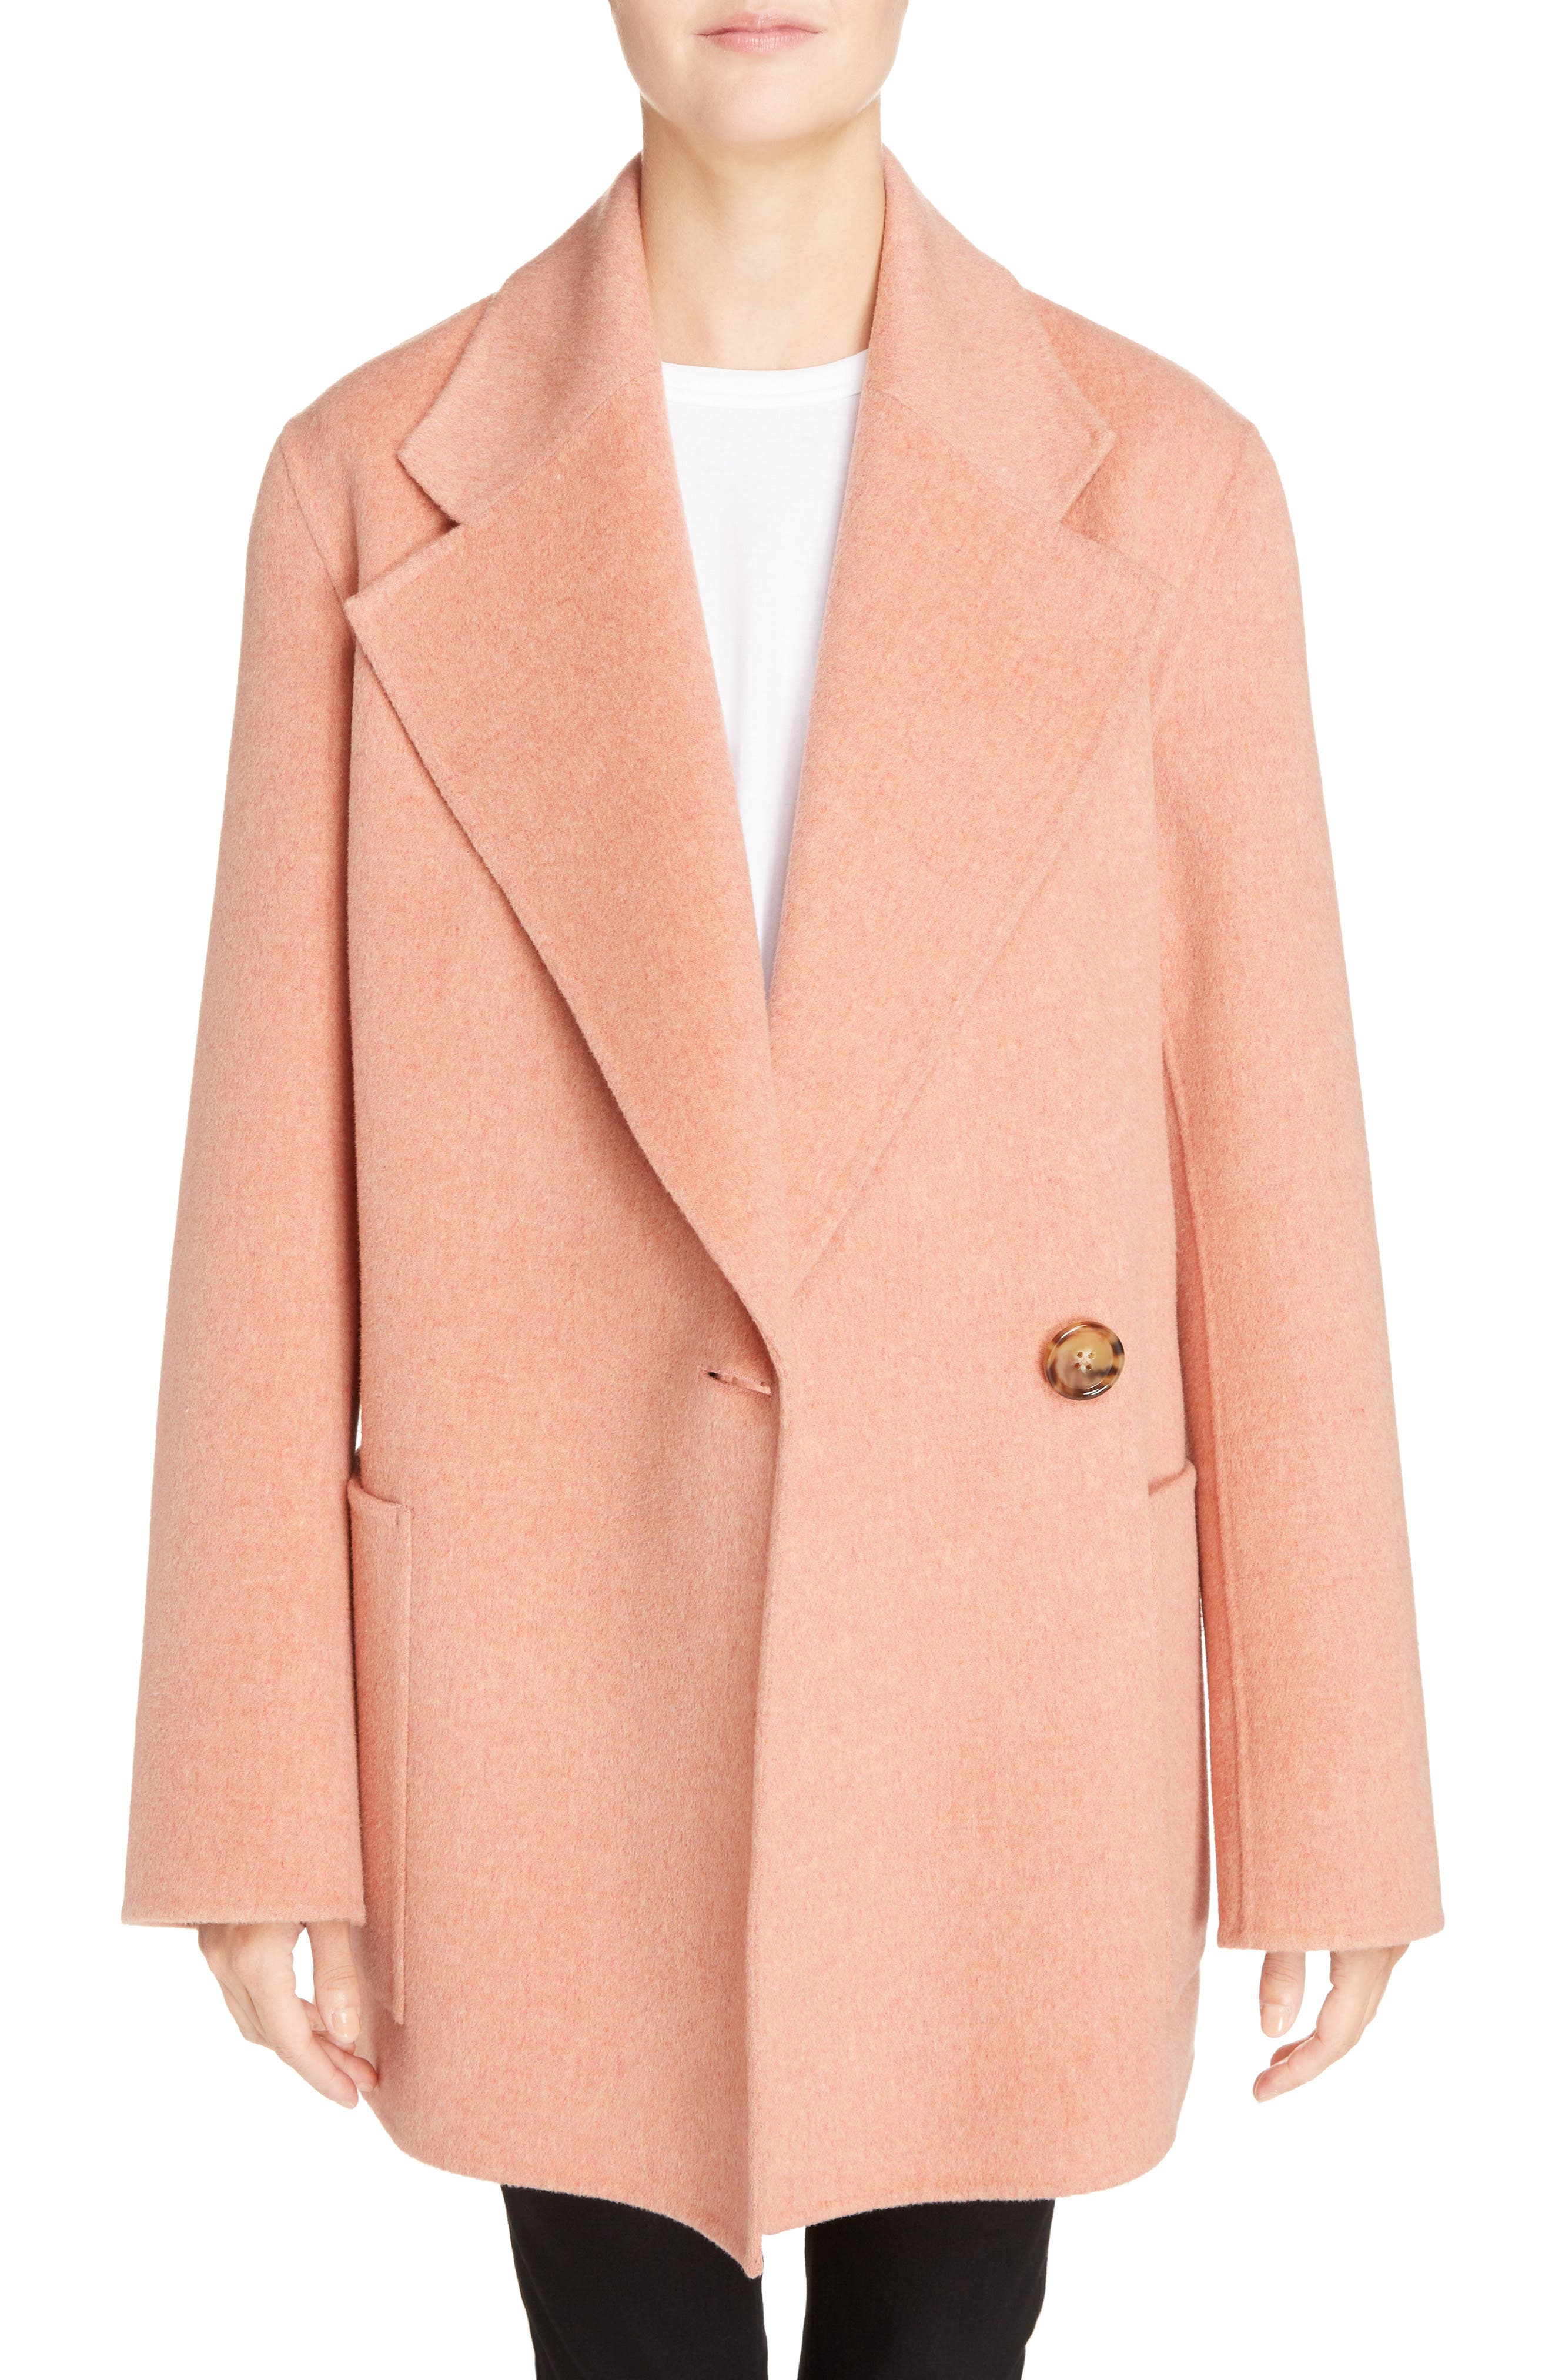 Anika Doublé Wool & Cashmere Coat,                             Main thumbnail 1, color,                             Rose Melange